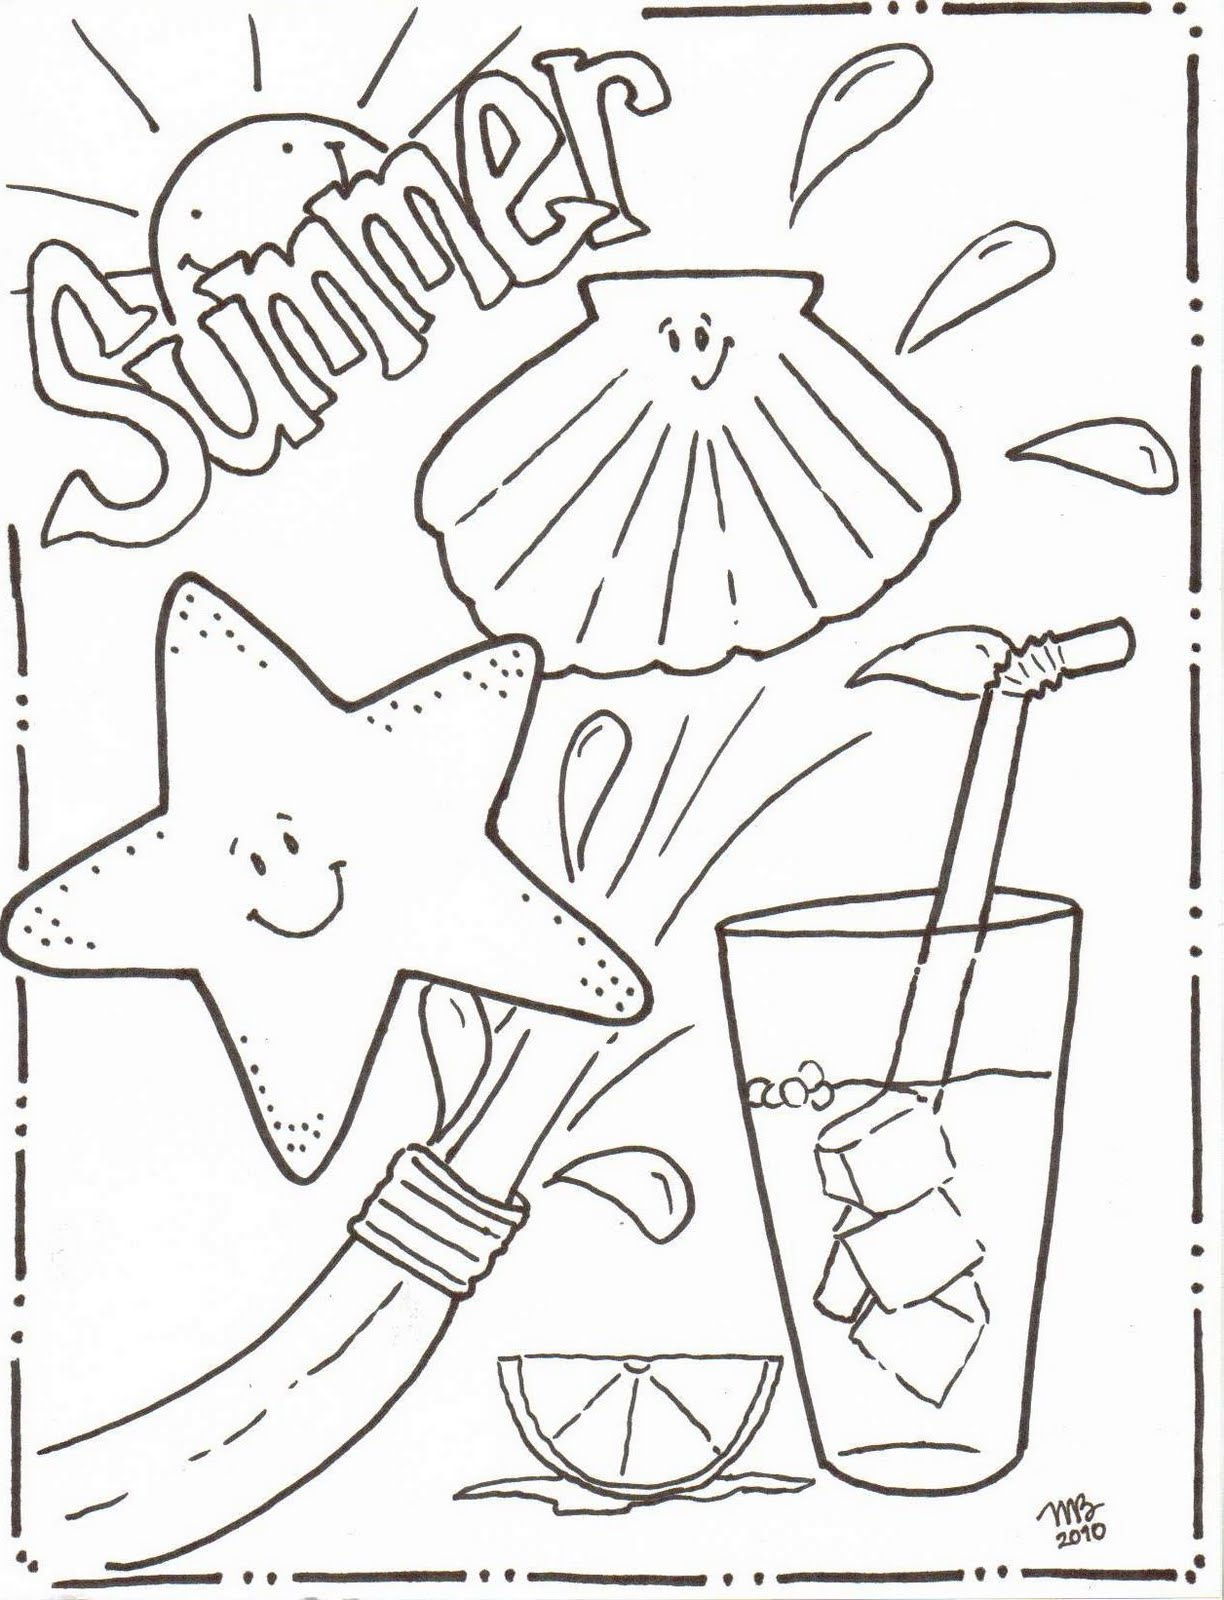 Hot Summer Coloring Pages Coloring Pages